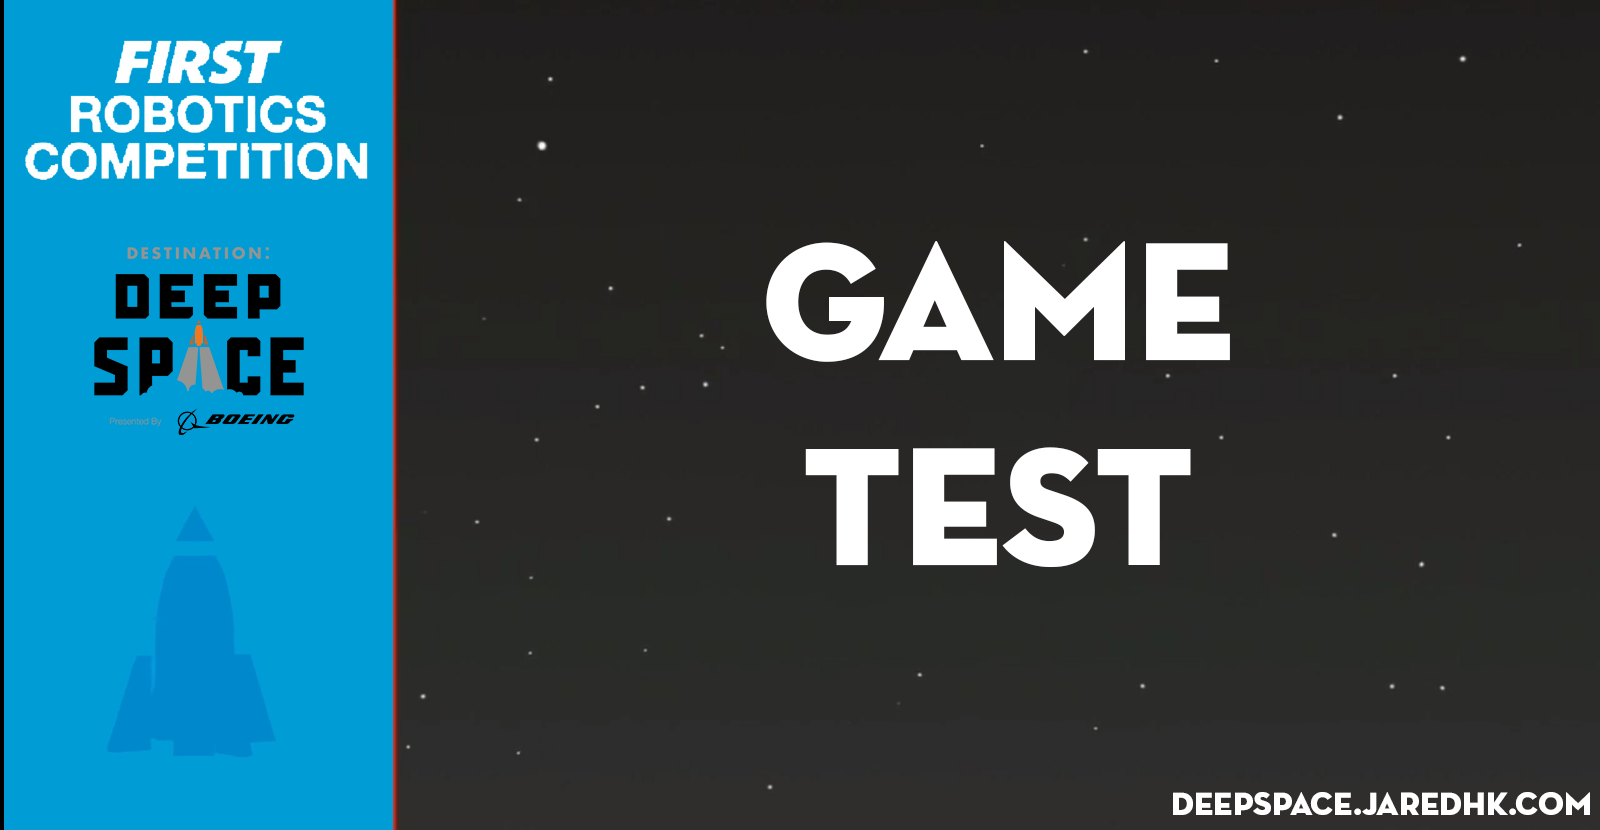 Jared H-K's DEEP SPACE Game Test